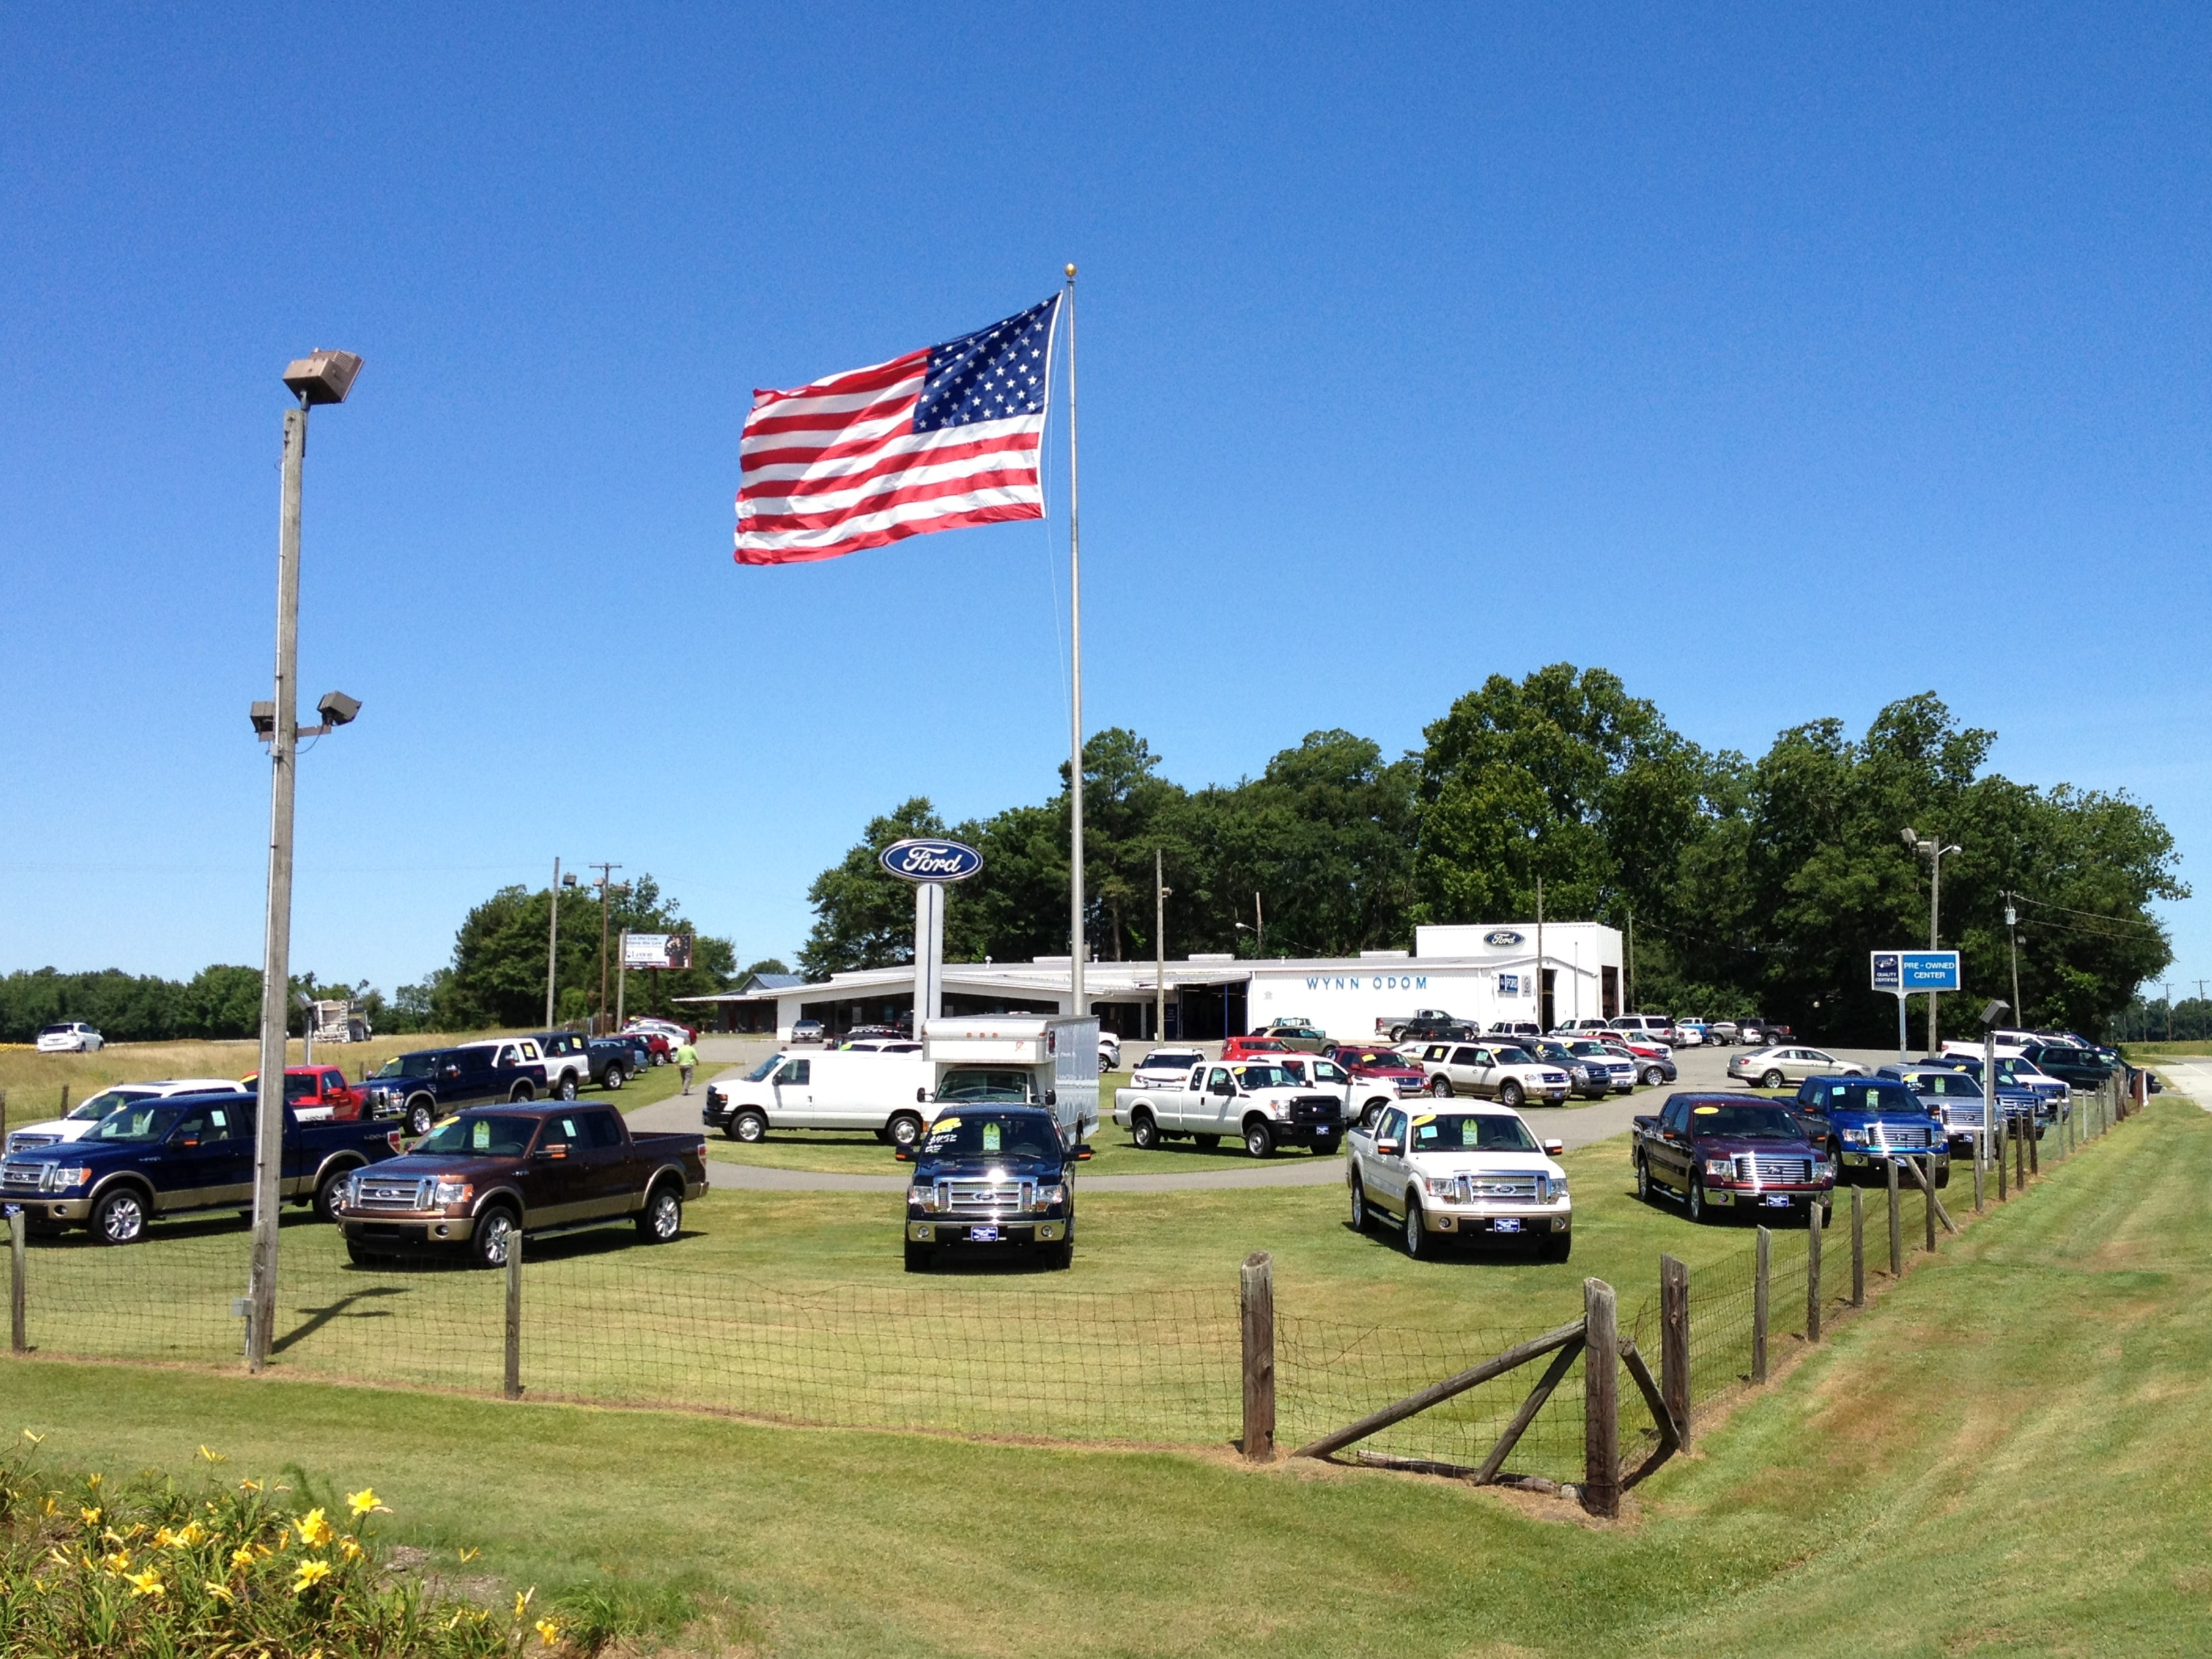 Ford Dealerships In Nc >> About Wynn Odom Ford A Ford Dealership In La Grange